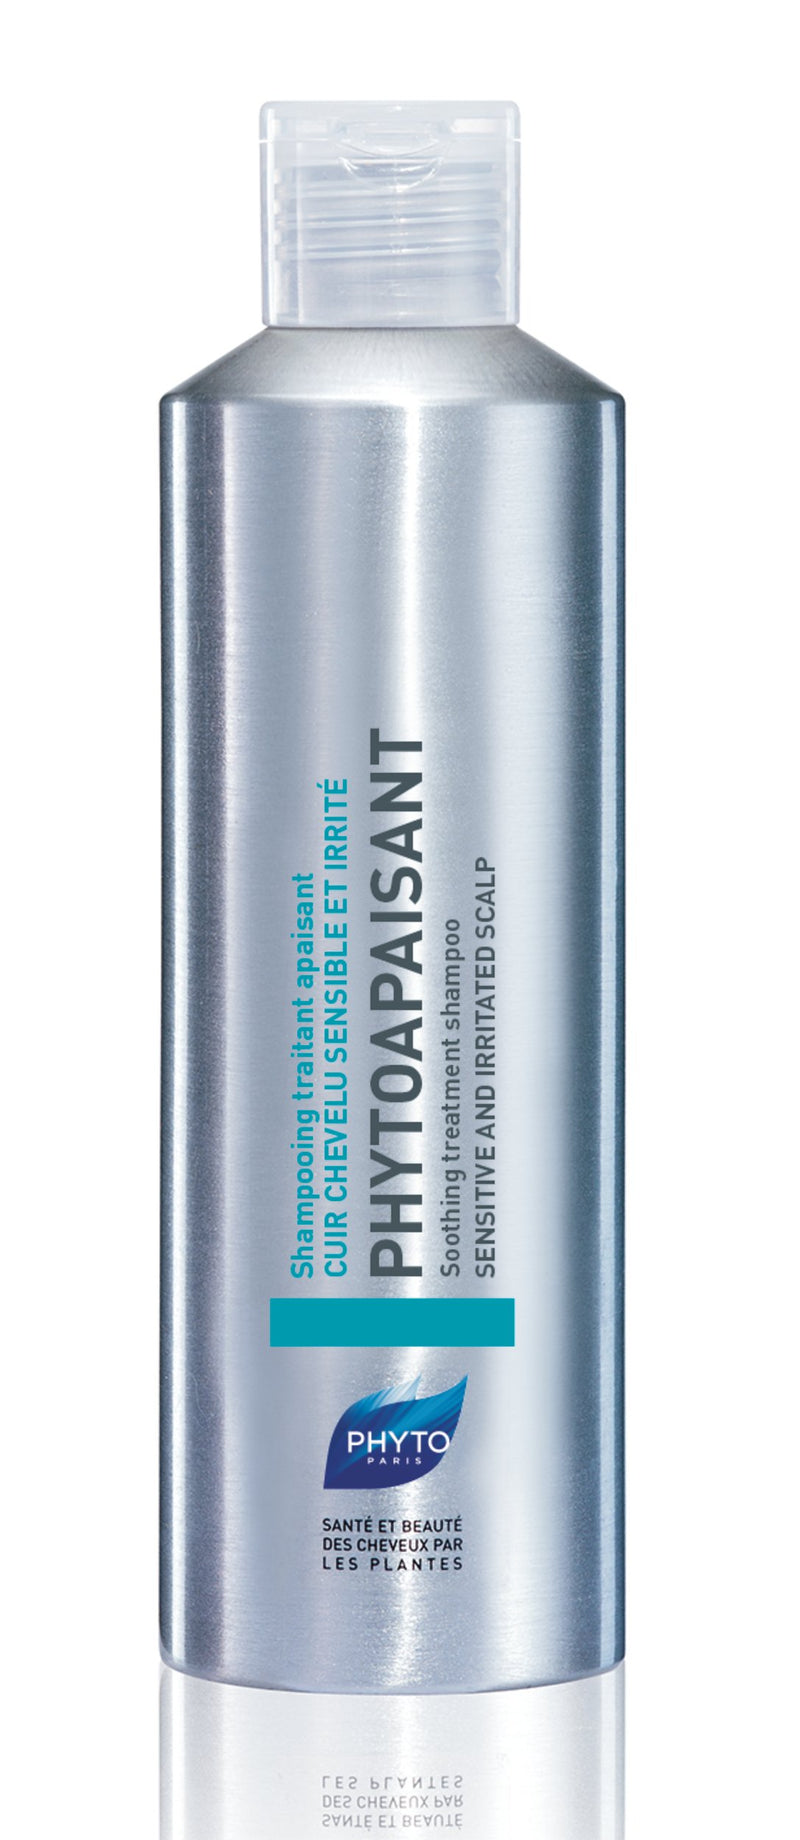 phyto-phytoapaisant-soothing-treatment-shampoo-200ml-cosmetics-online